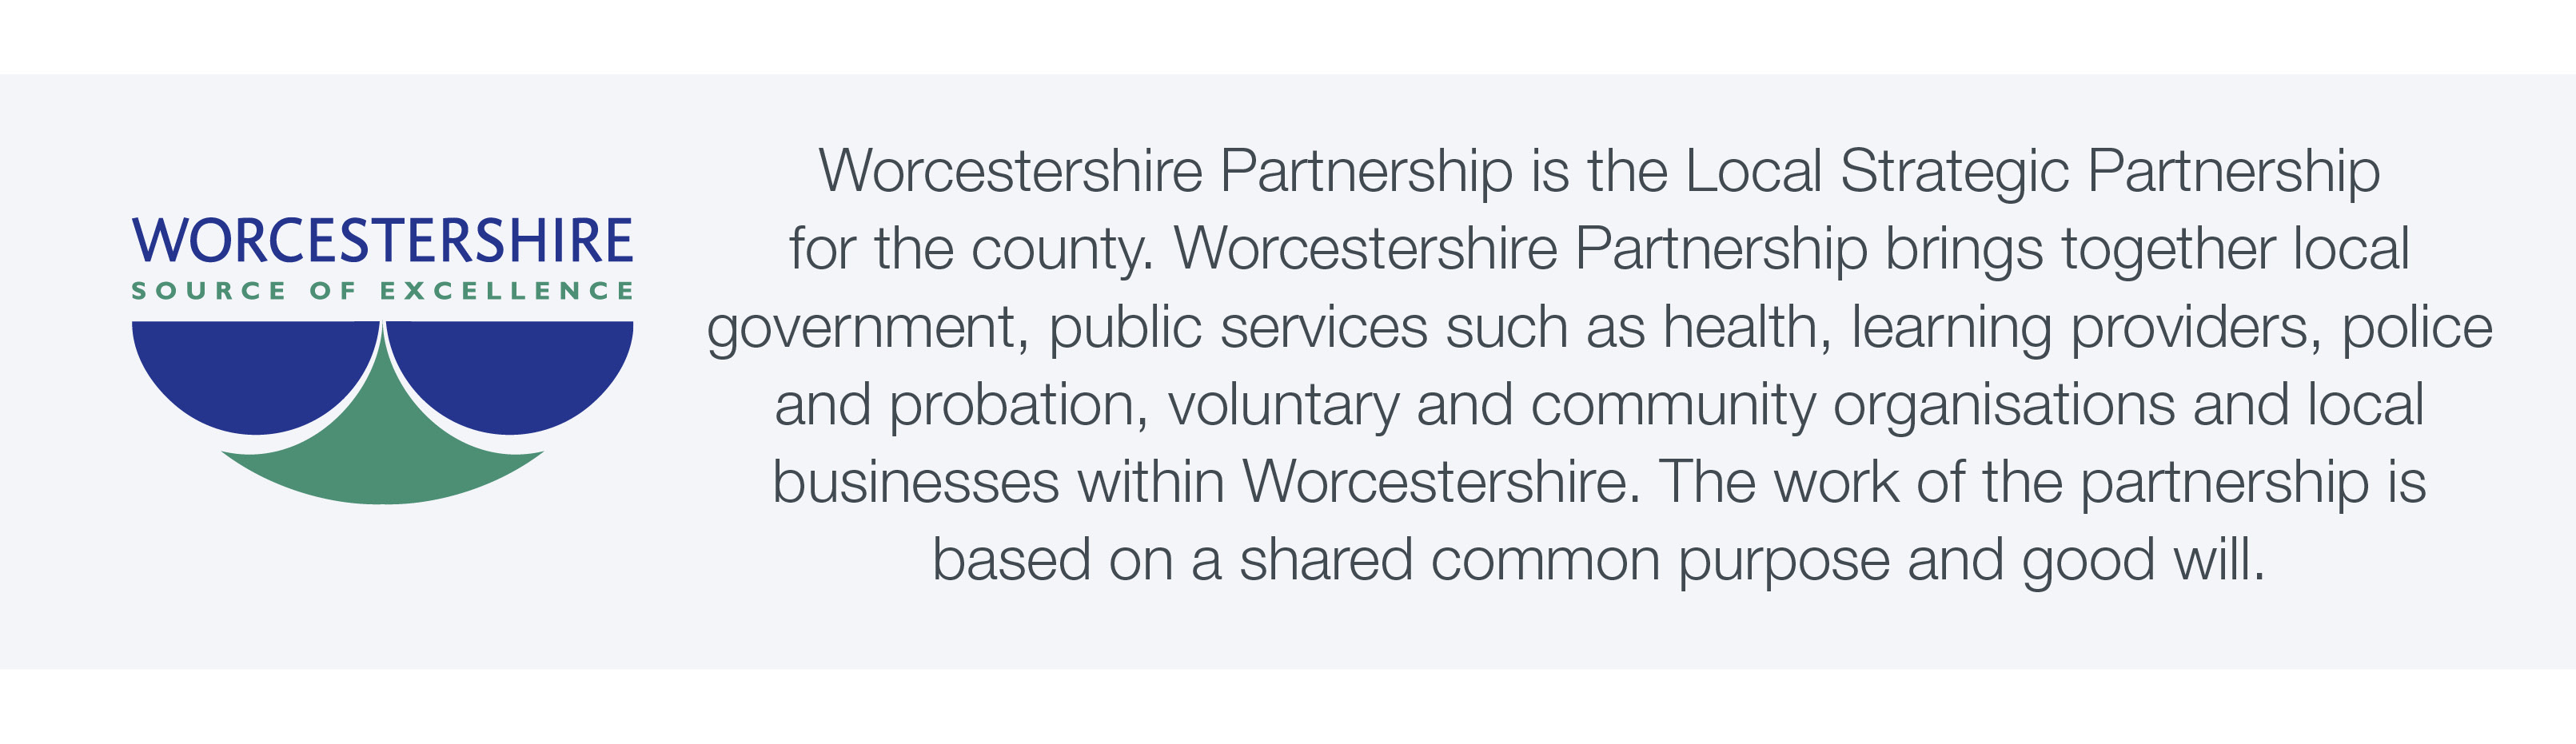 Worcestershire Partnership is the Local Strategic Partnership for the county. Worcestershire Partnership brings together local government, public services such as health, learning providers, police and probation, voluntary and community organisations and local businesses within Worcestershire. The work of the partnership is based on a shared common purpose and good will.